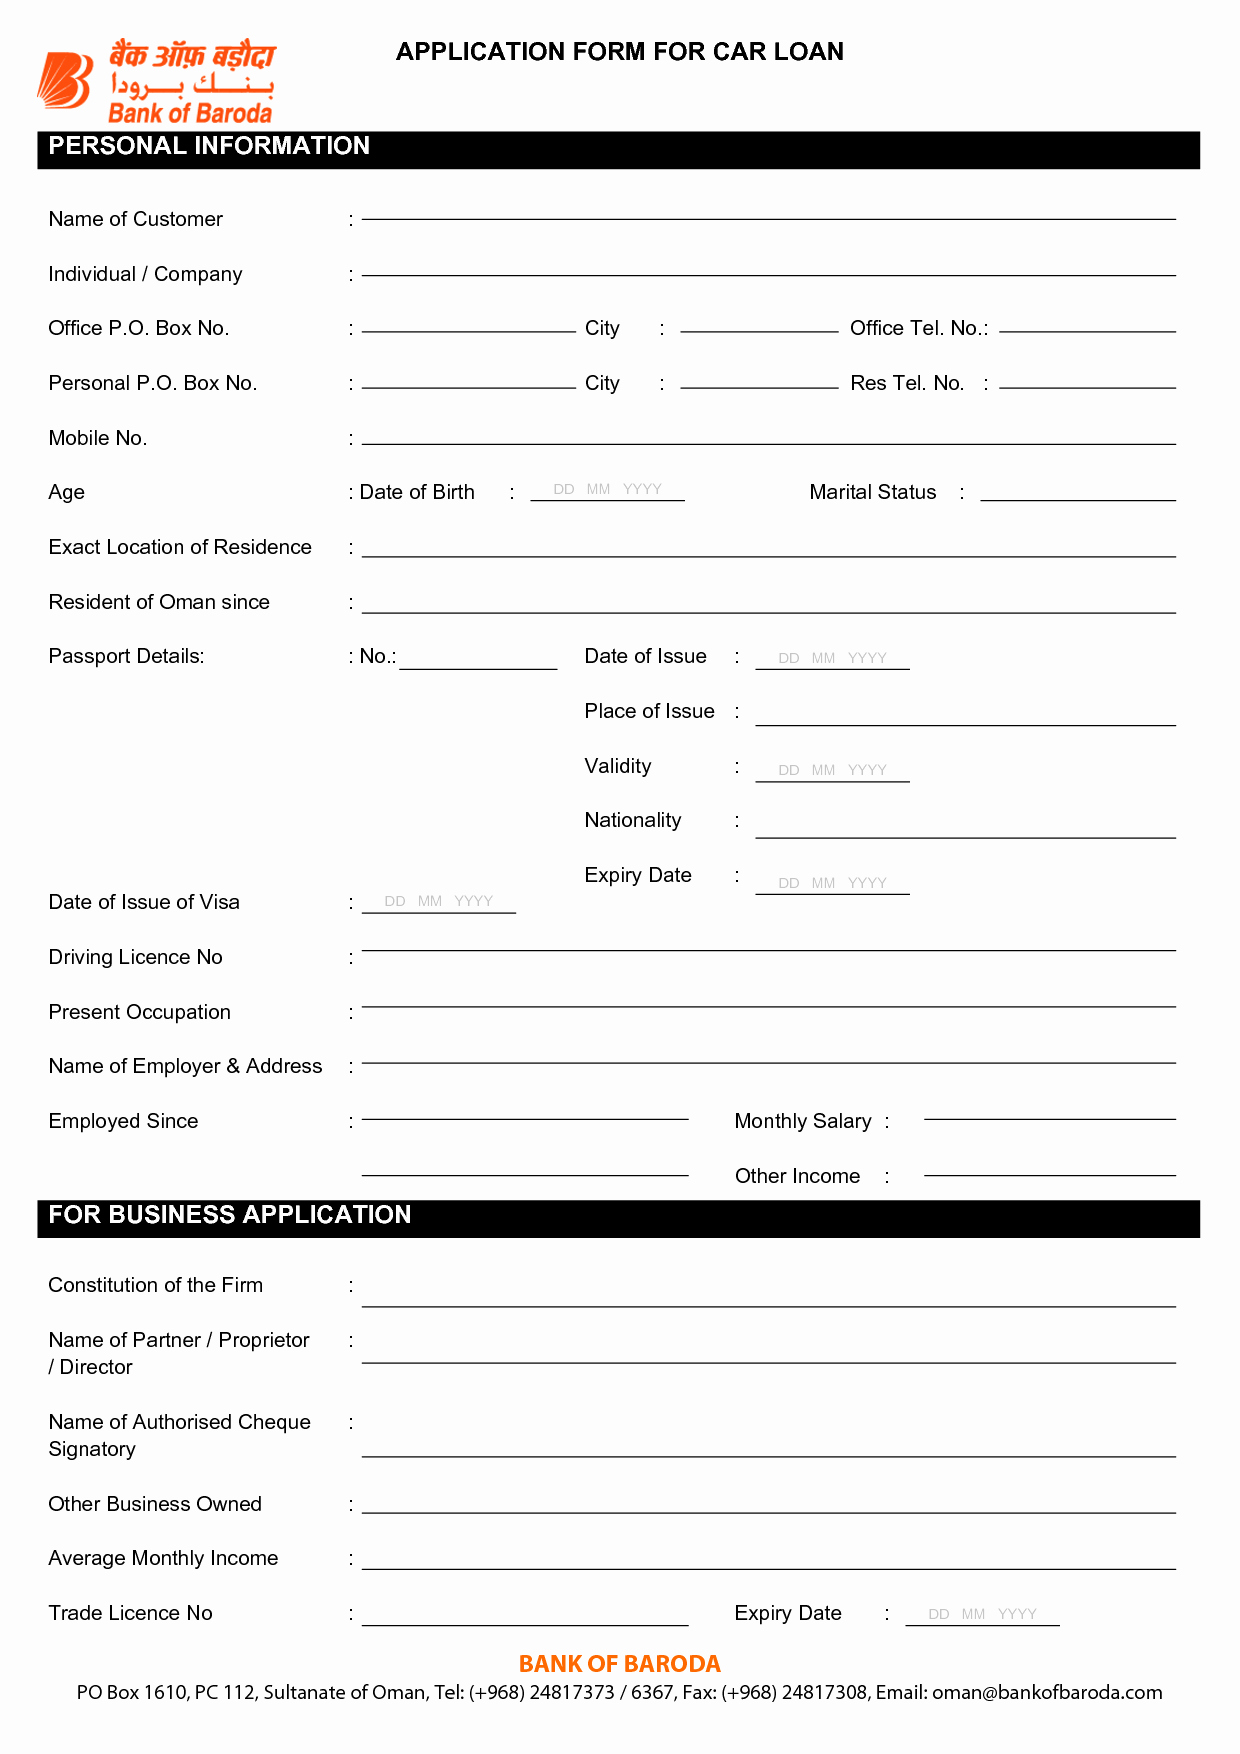 Auto Credit Application form Template Elegant Car Finance for Bad Credit Leeds